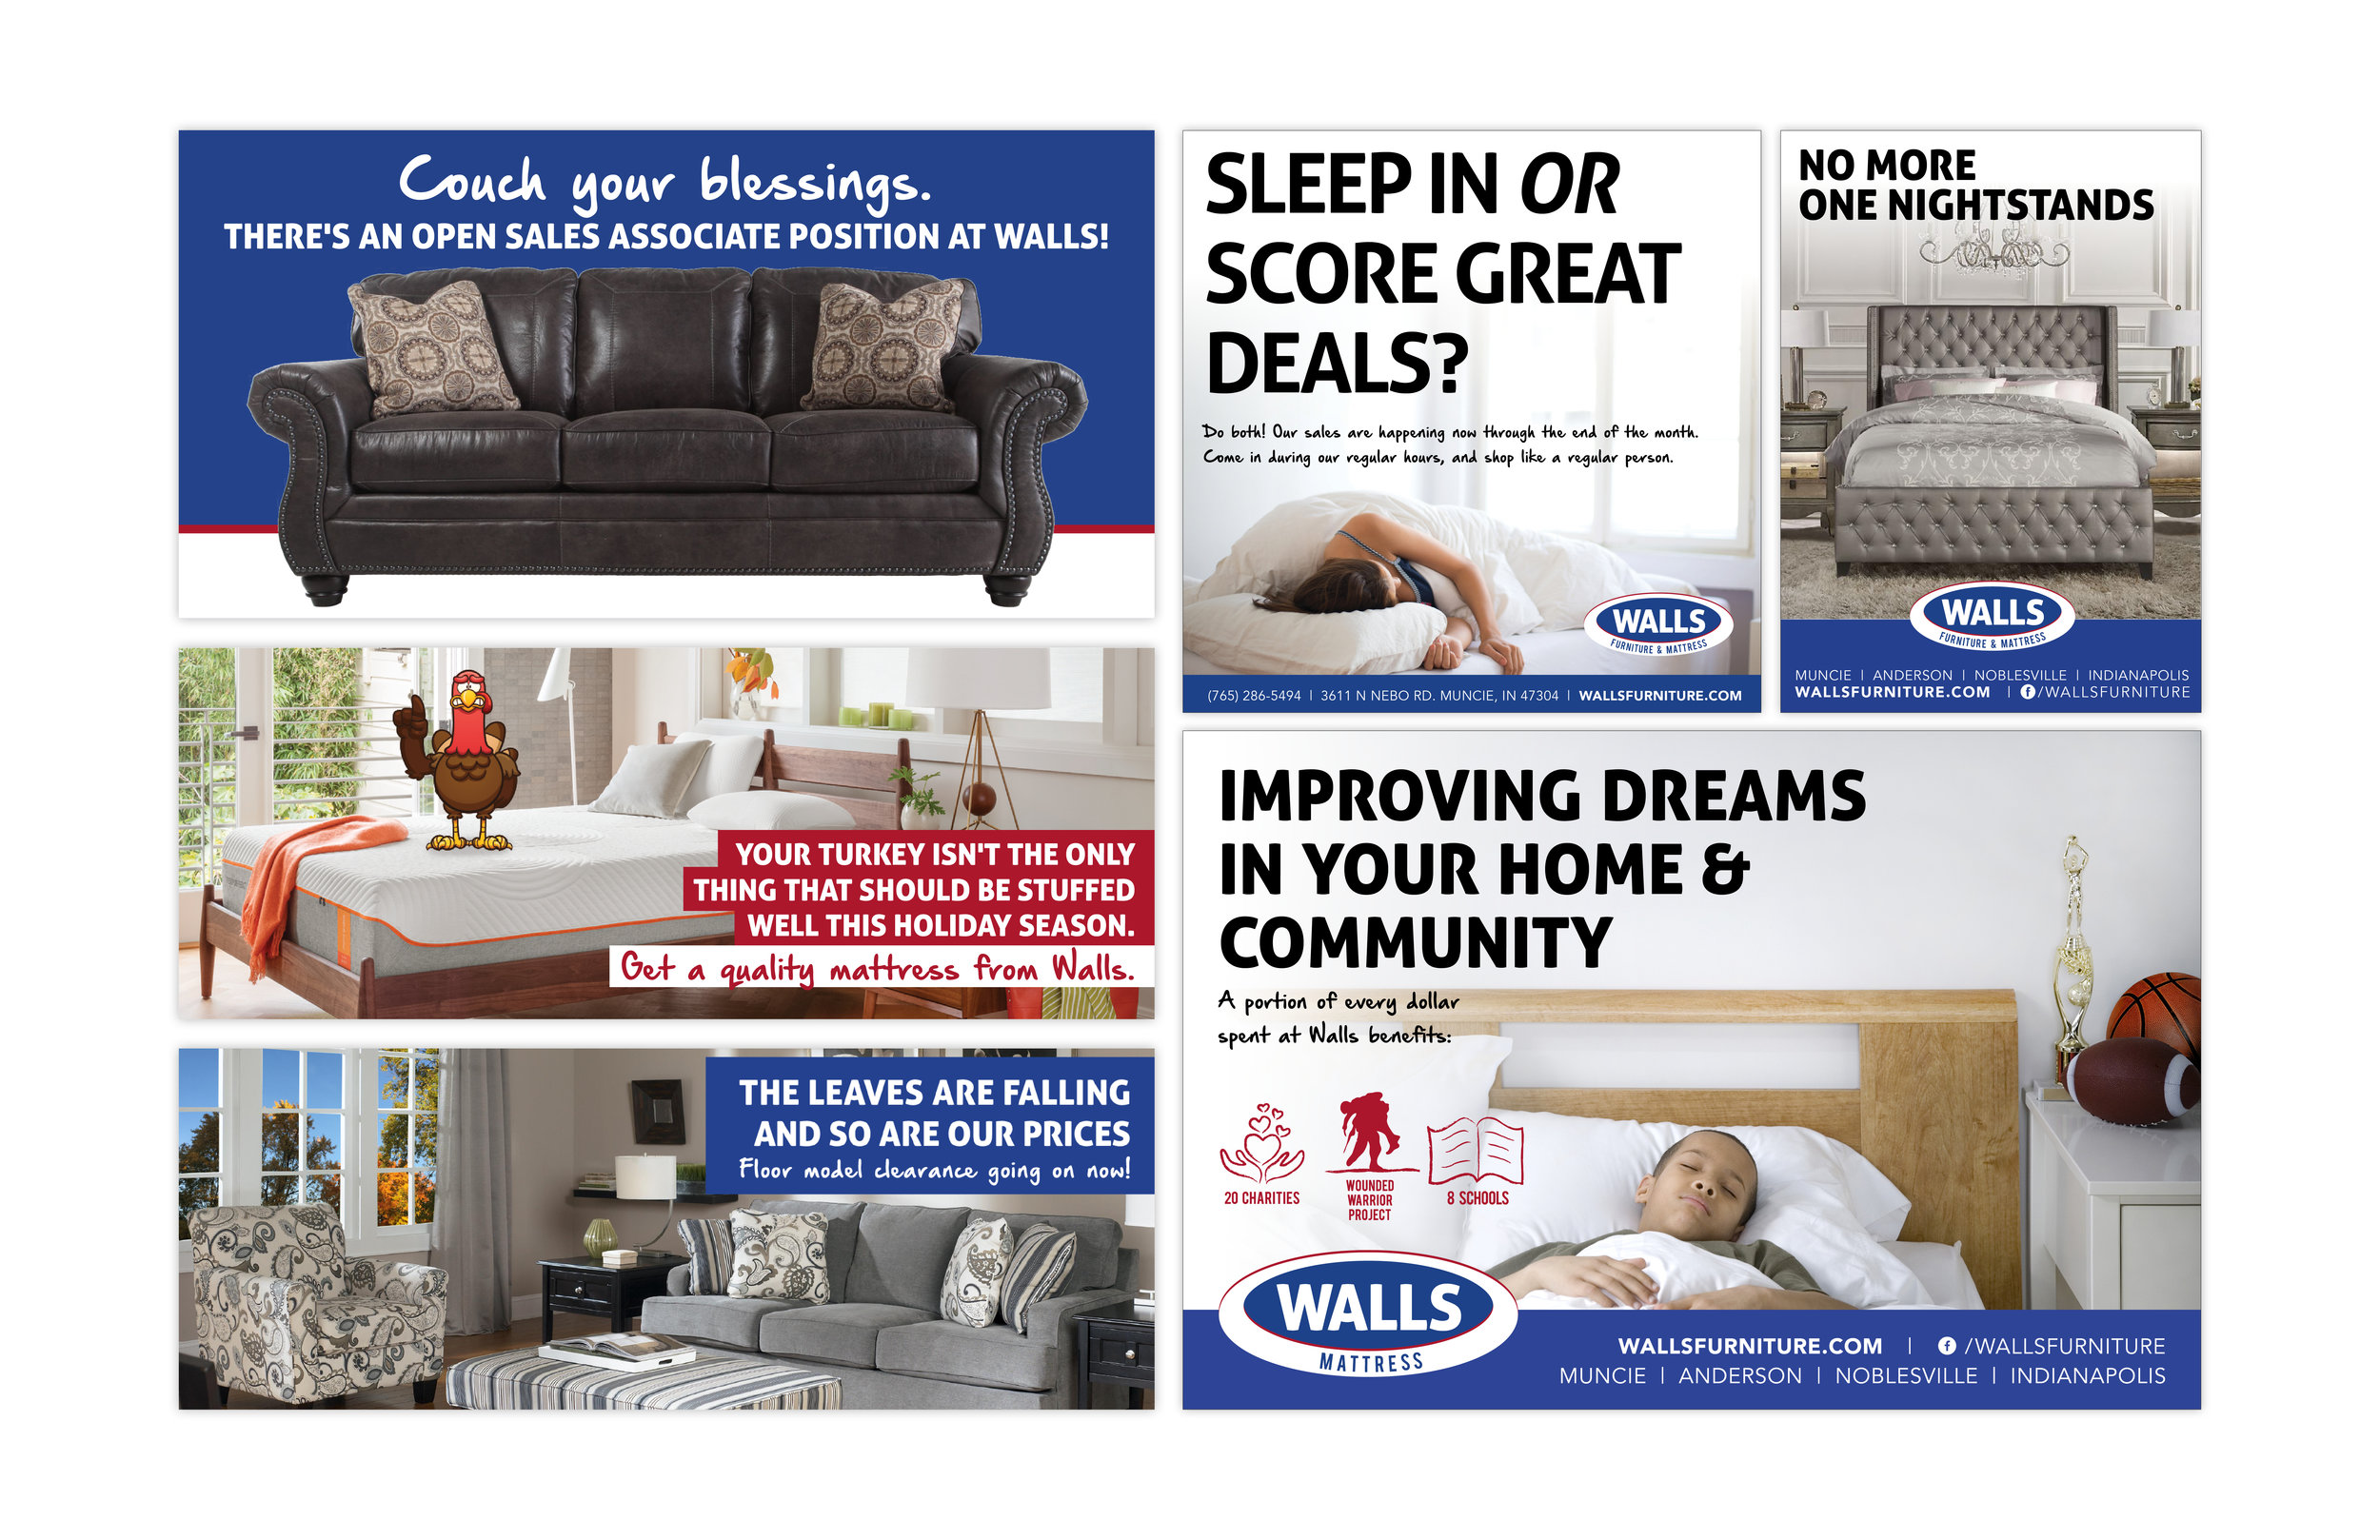 Walls Furniture Mattress Intersection Advertising Agency